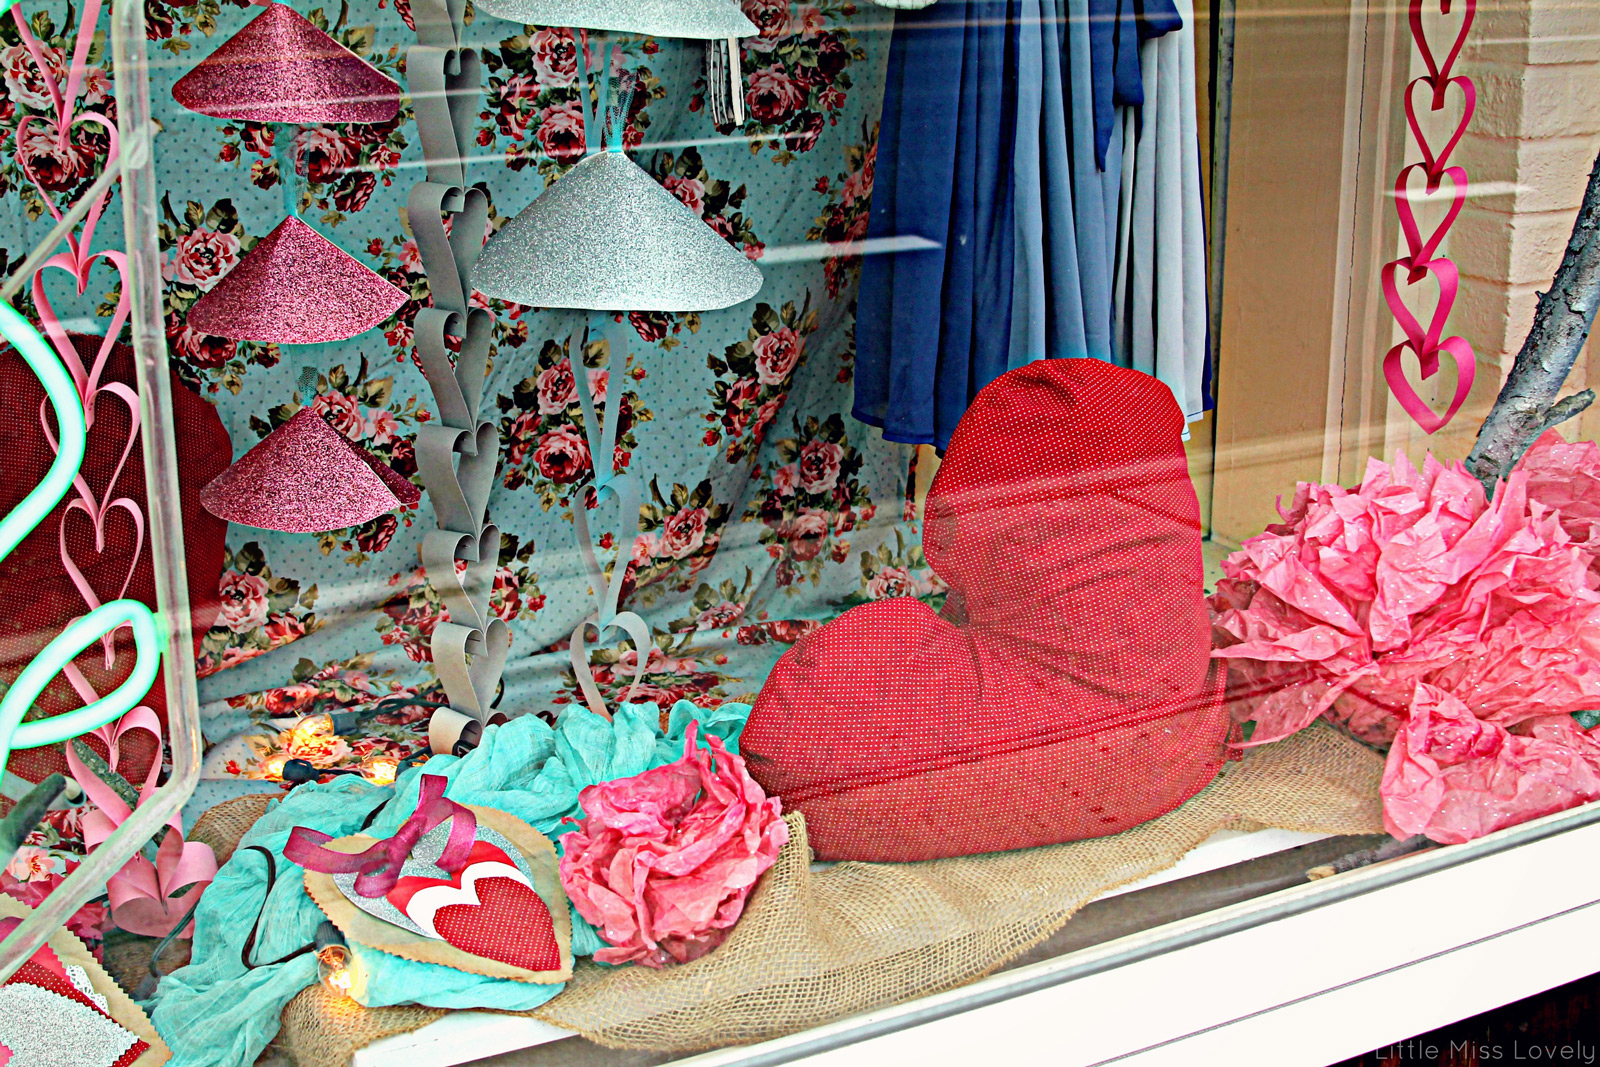 A lovely & cozy Valentine's Day window display decoration with a big, red pillow in the shape of a heart, another little hearts of paper and a curtain with flowers.